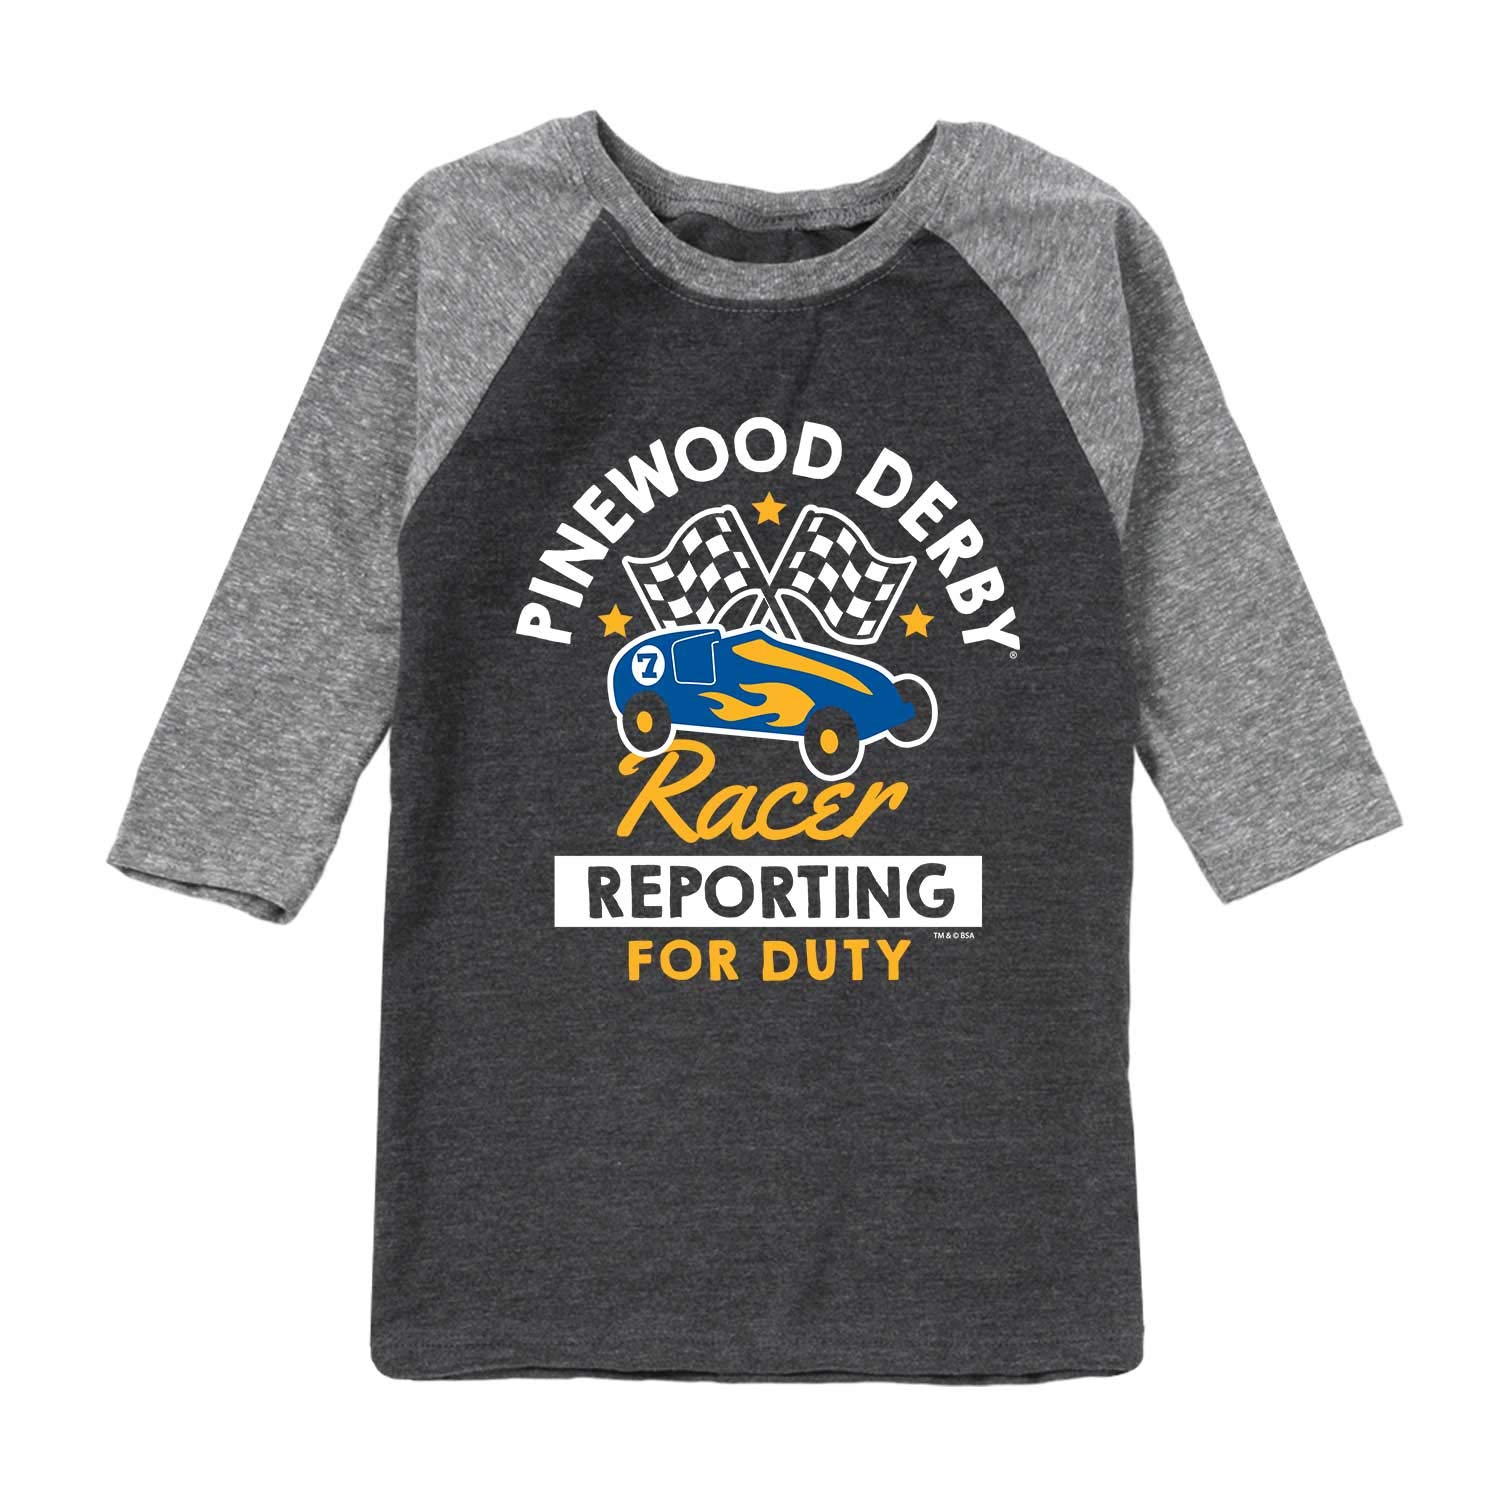 Boy Scouts of America Pinewood Racer Reporting for Duty - Youth Raglan